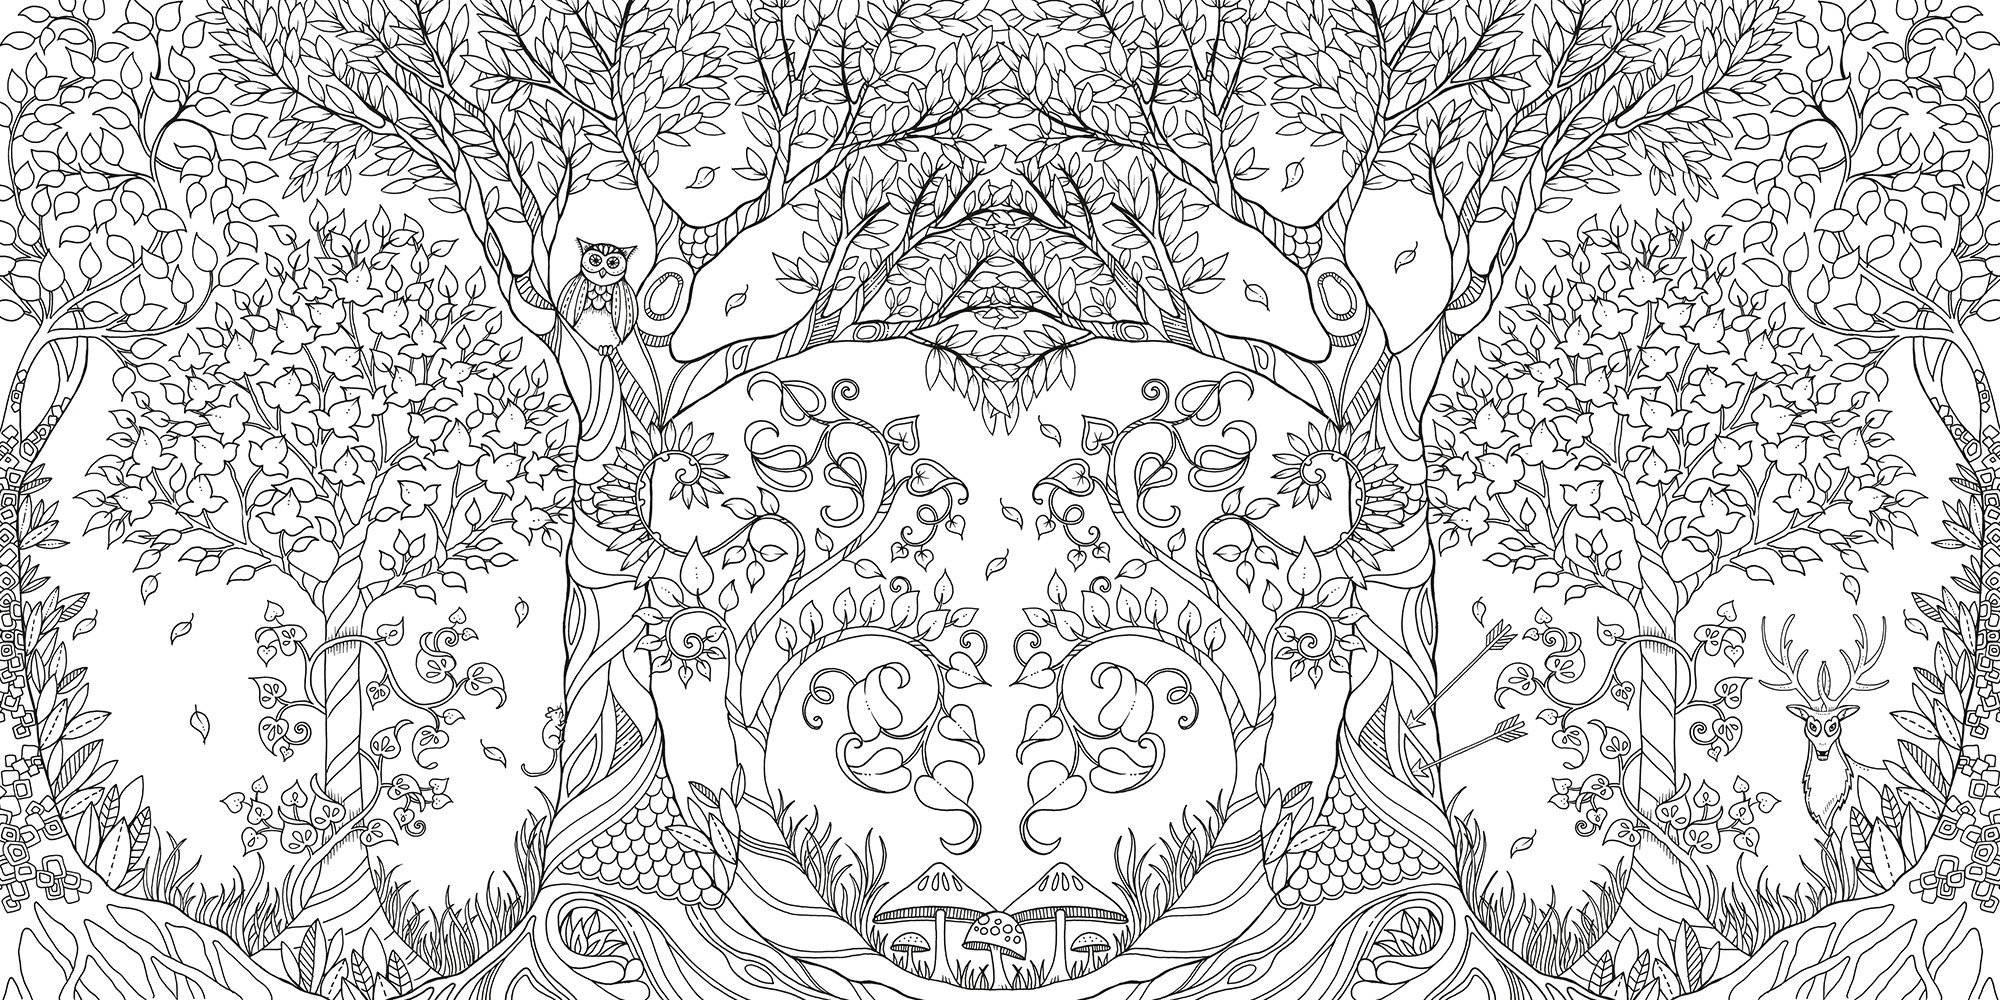 Ausmalbilder Querflöte Genial so Whats the whole Adult Coloring Book Thing Anyway Hometo Sammlung